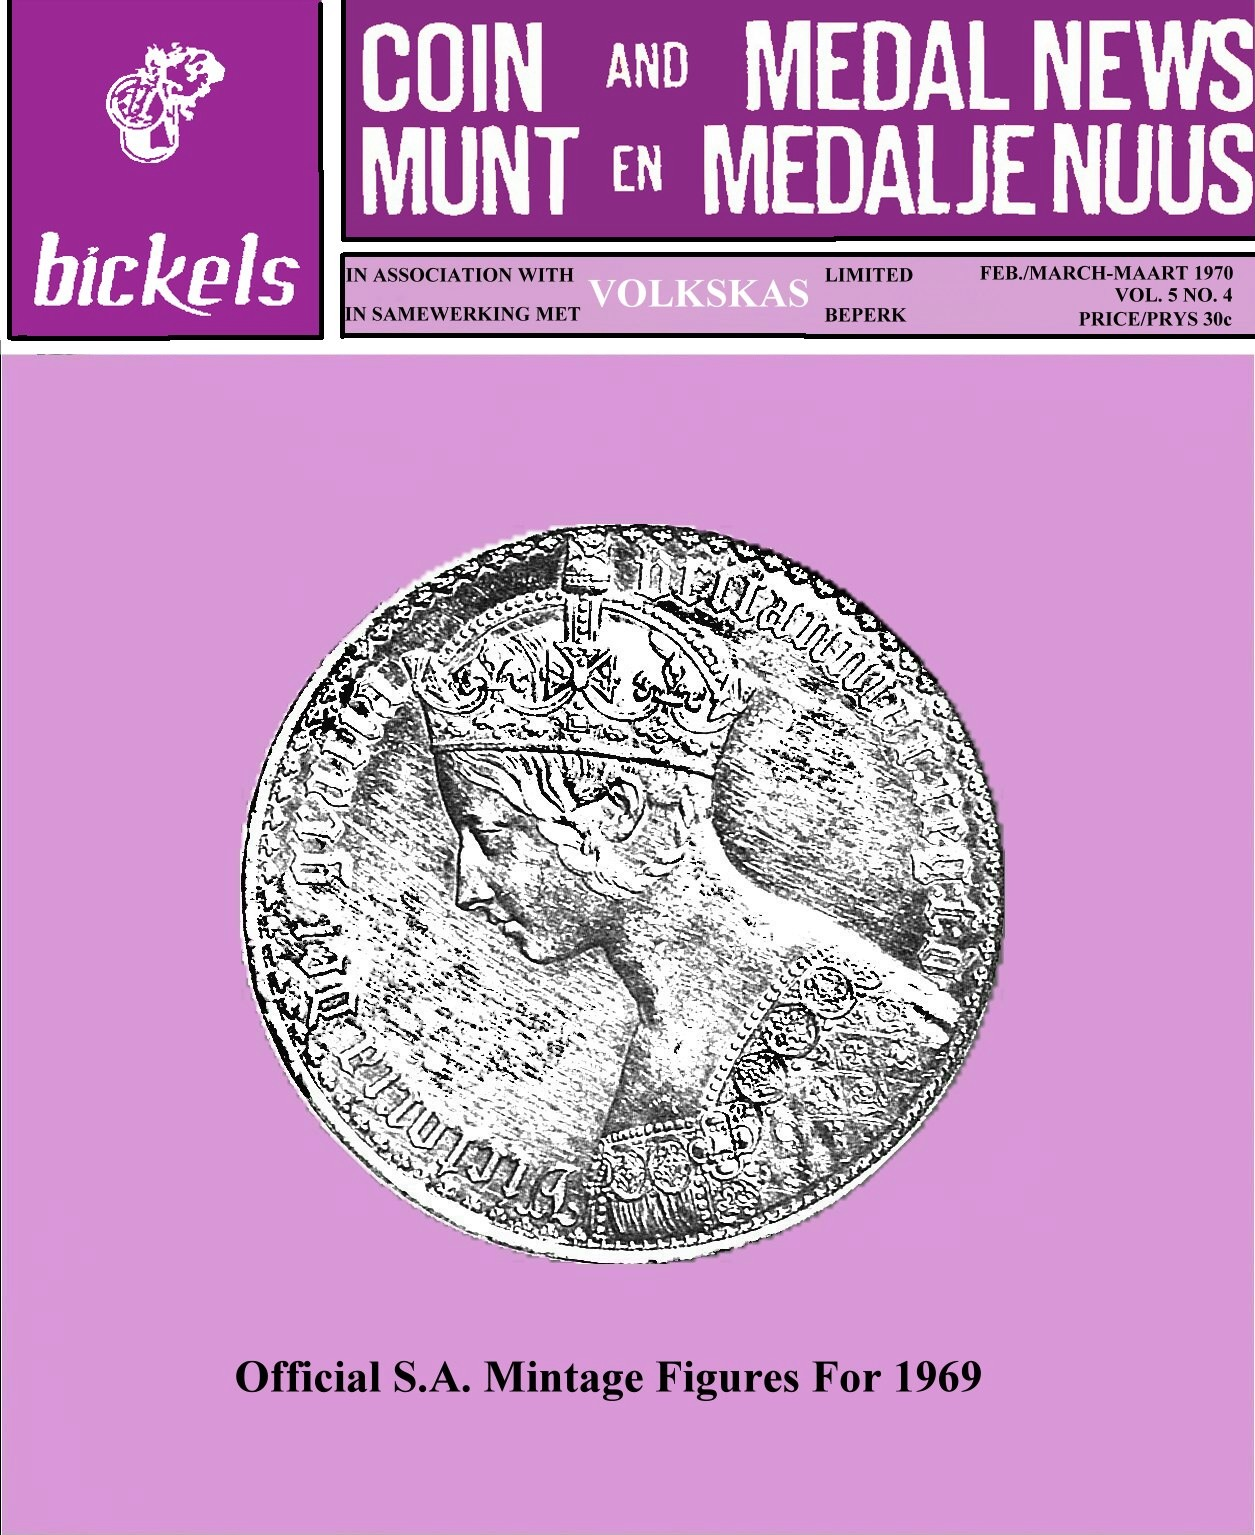 Bickel Coin & Medal News February March 1970 Vol 5 No 4